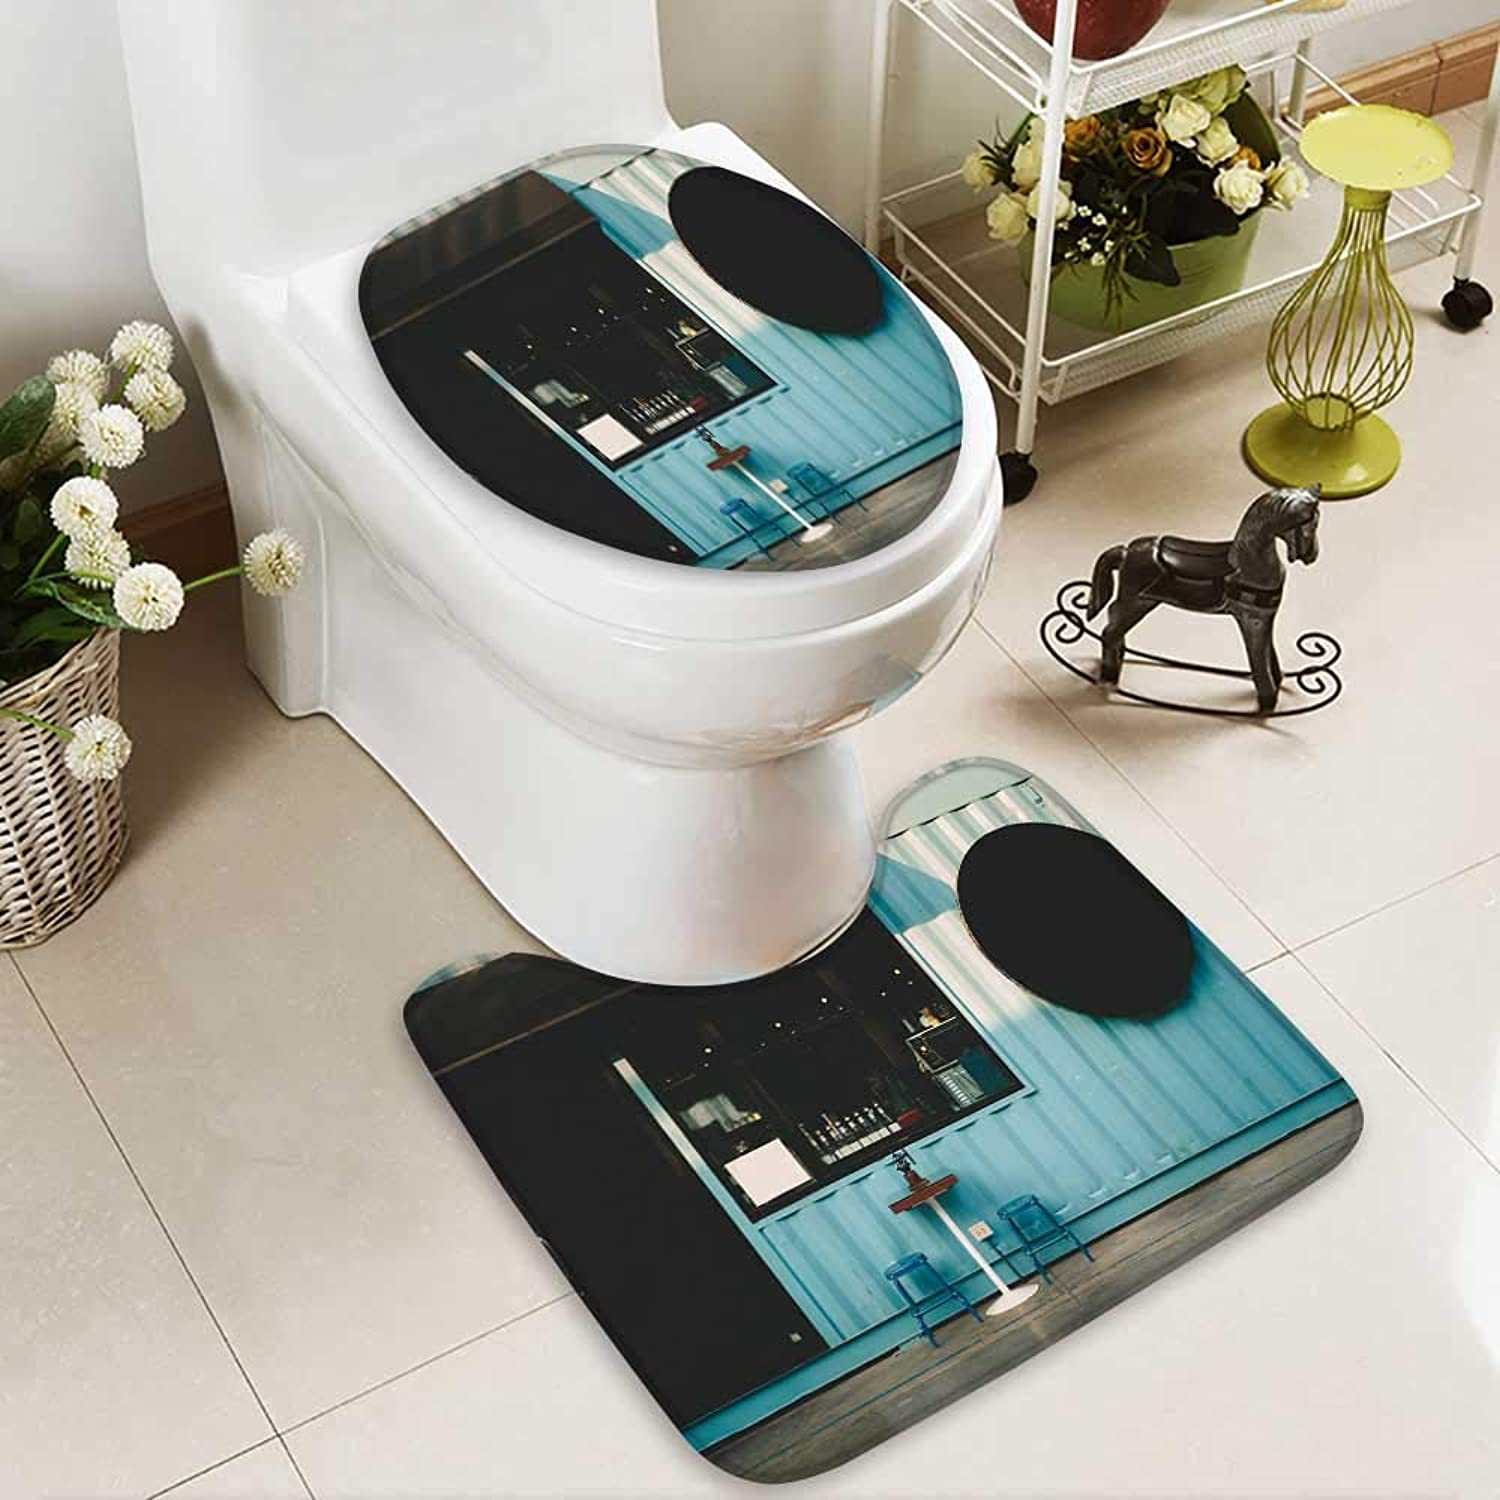 Analisahome 2 Piece Bathroom Contour Rugs Front Coffee Shop Non Slip Comfortable SND Soft